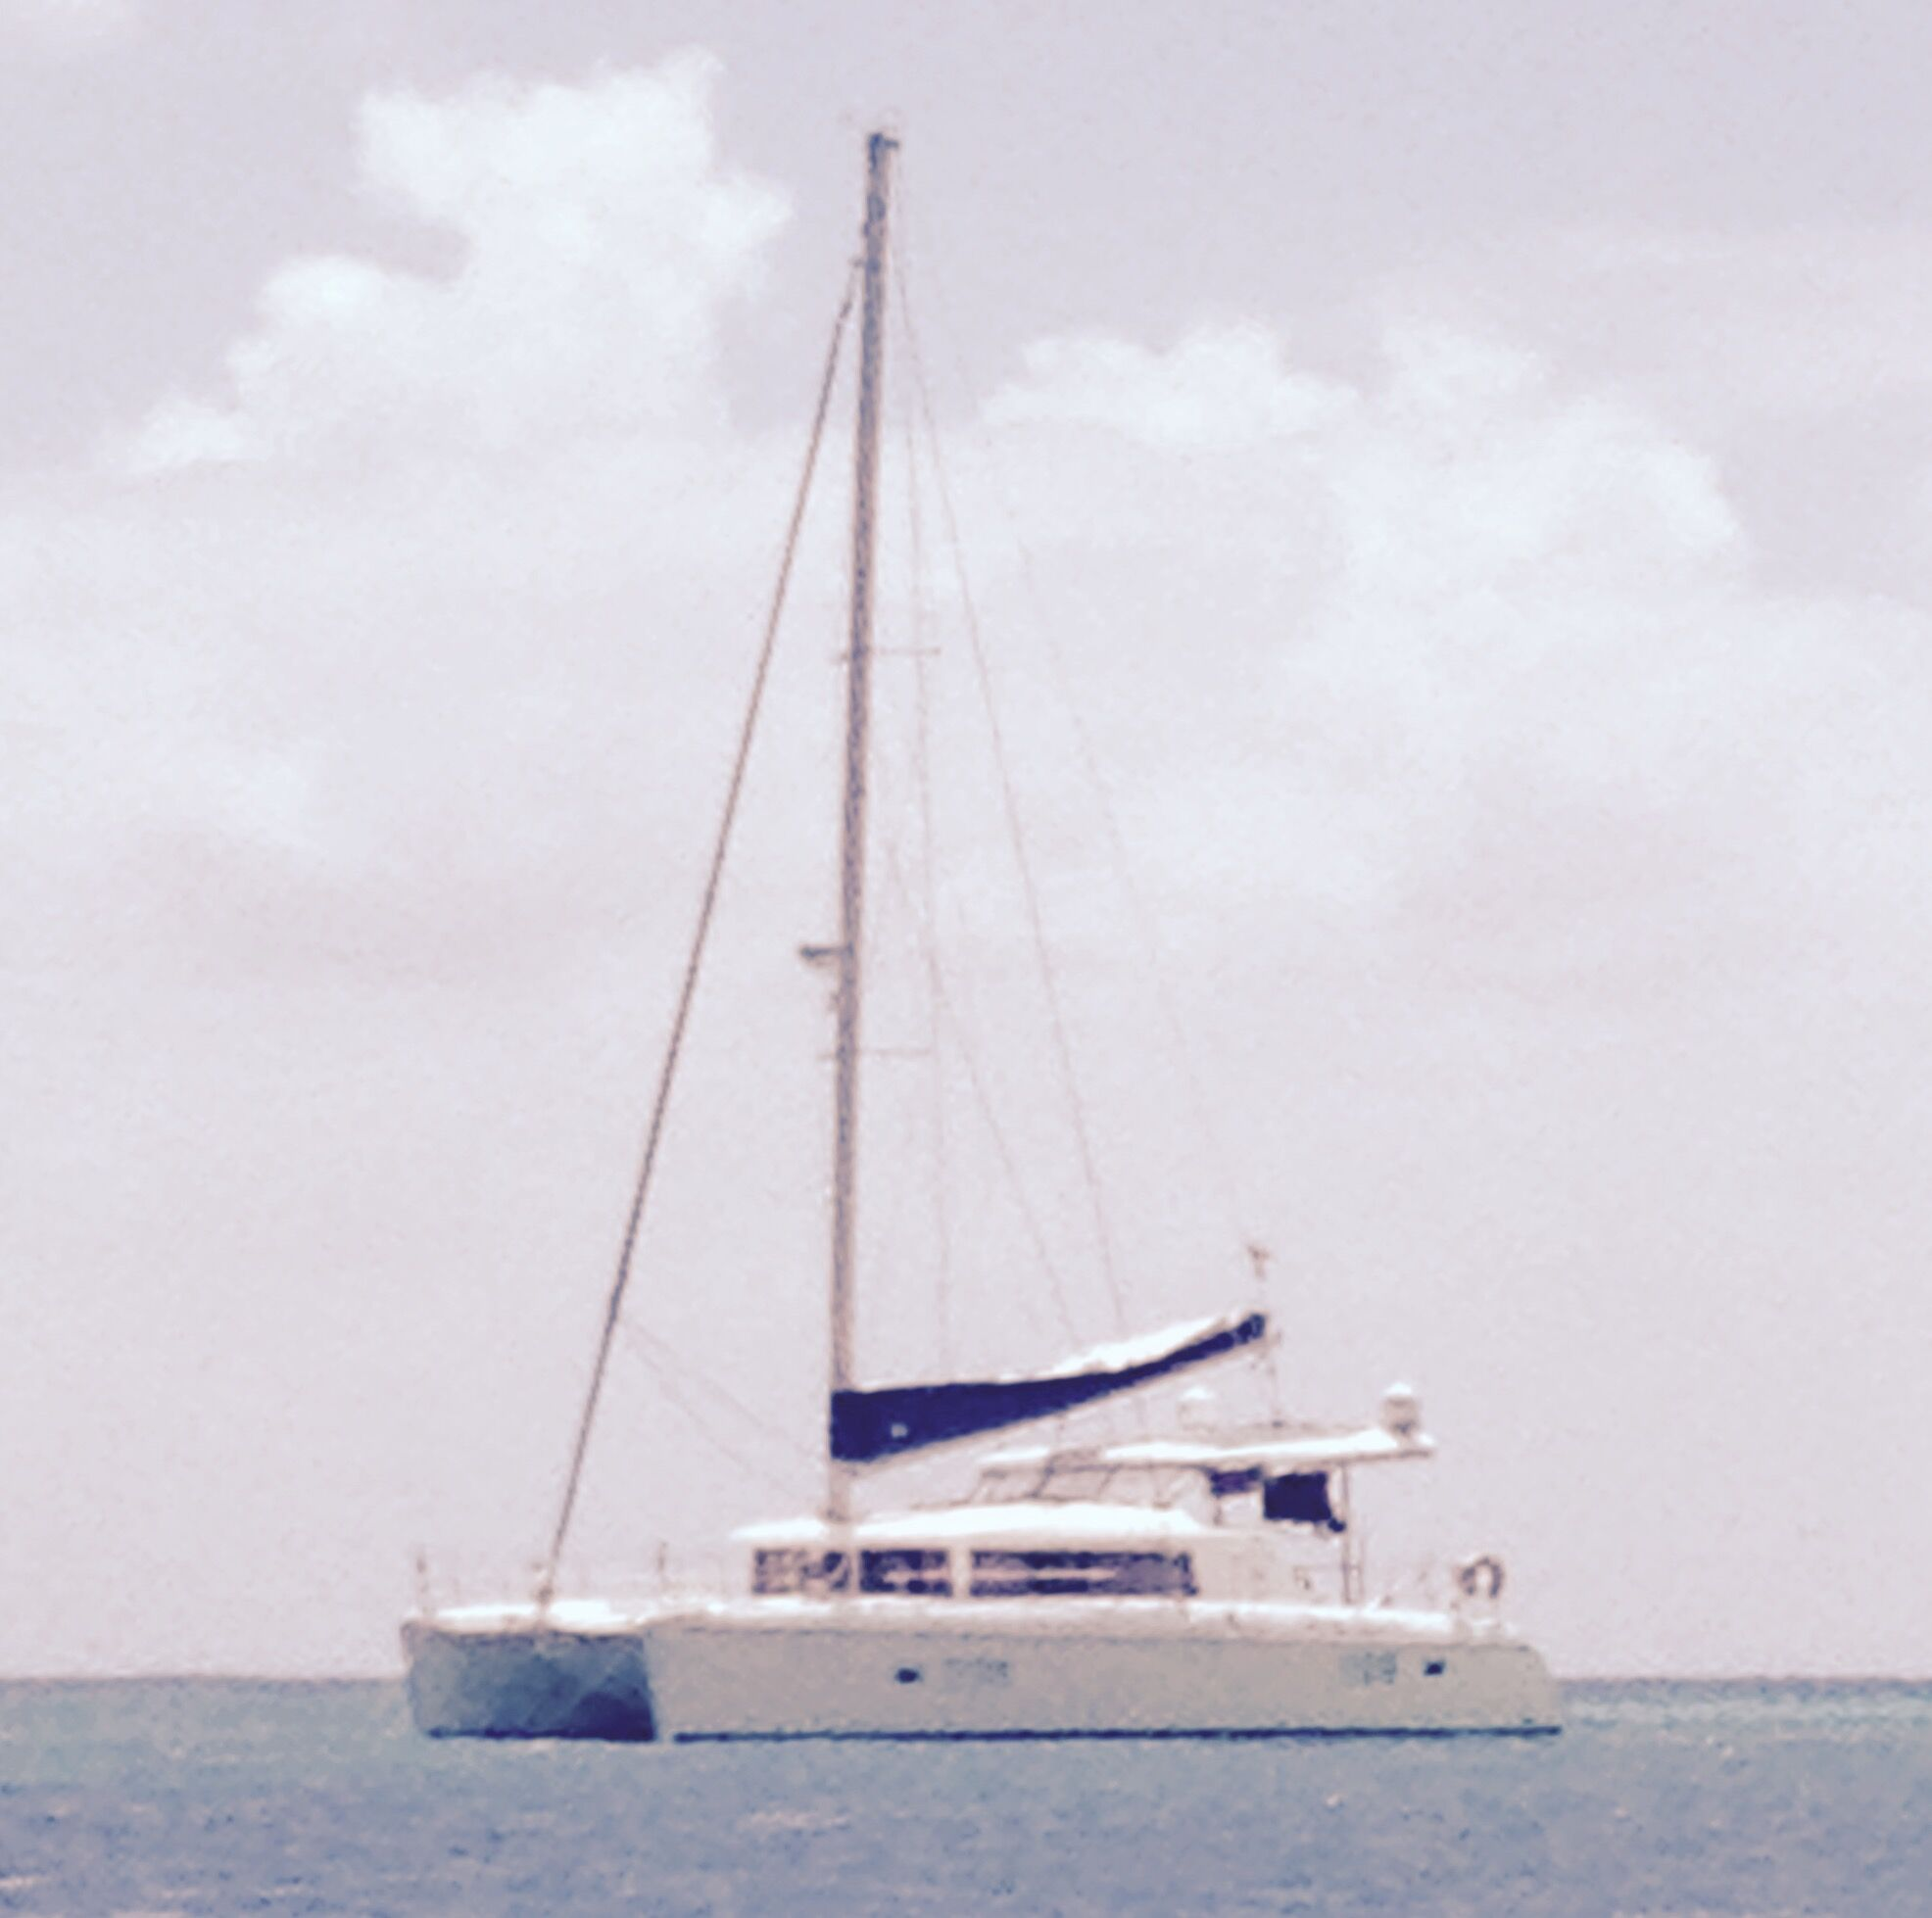 Catamarans LONG REACH , Manufacturer: LAGOON, Model Year: 2009, Length: 42ft, Model: Lagoon 420, Condition: Used, Status: Catamaran for Sale, Price: USD 385000